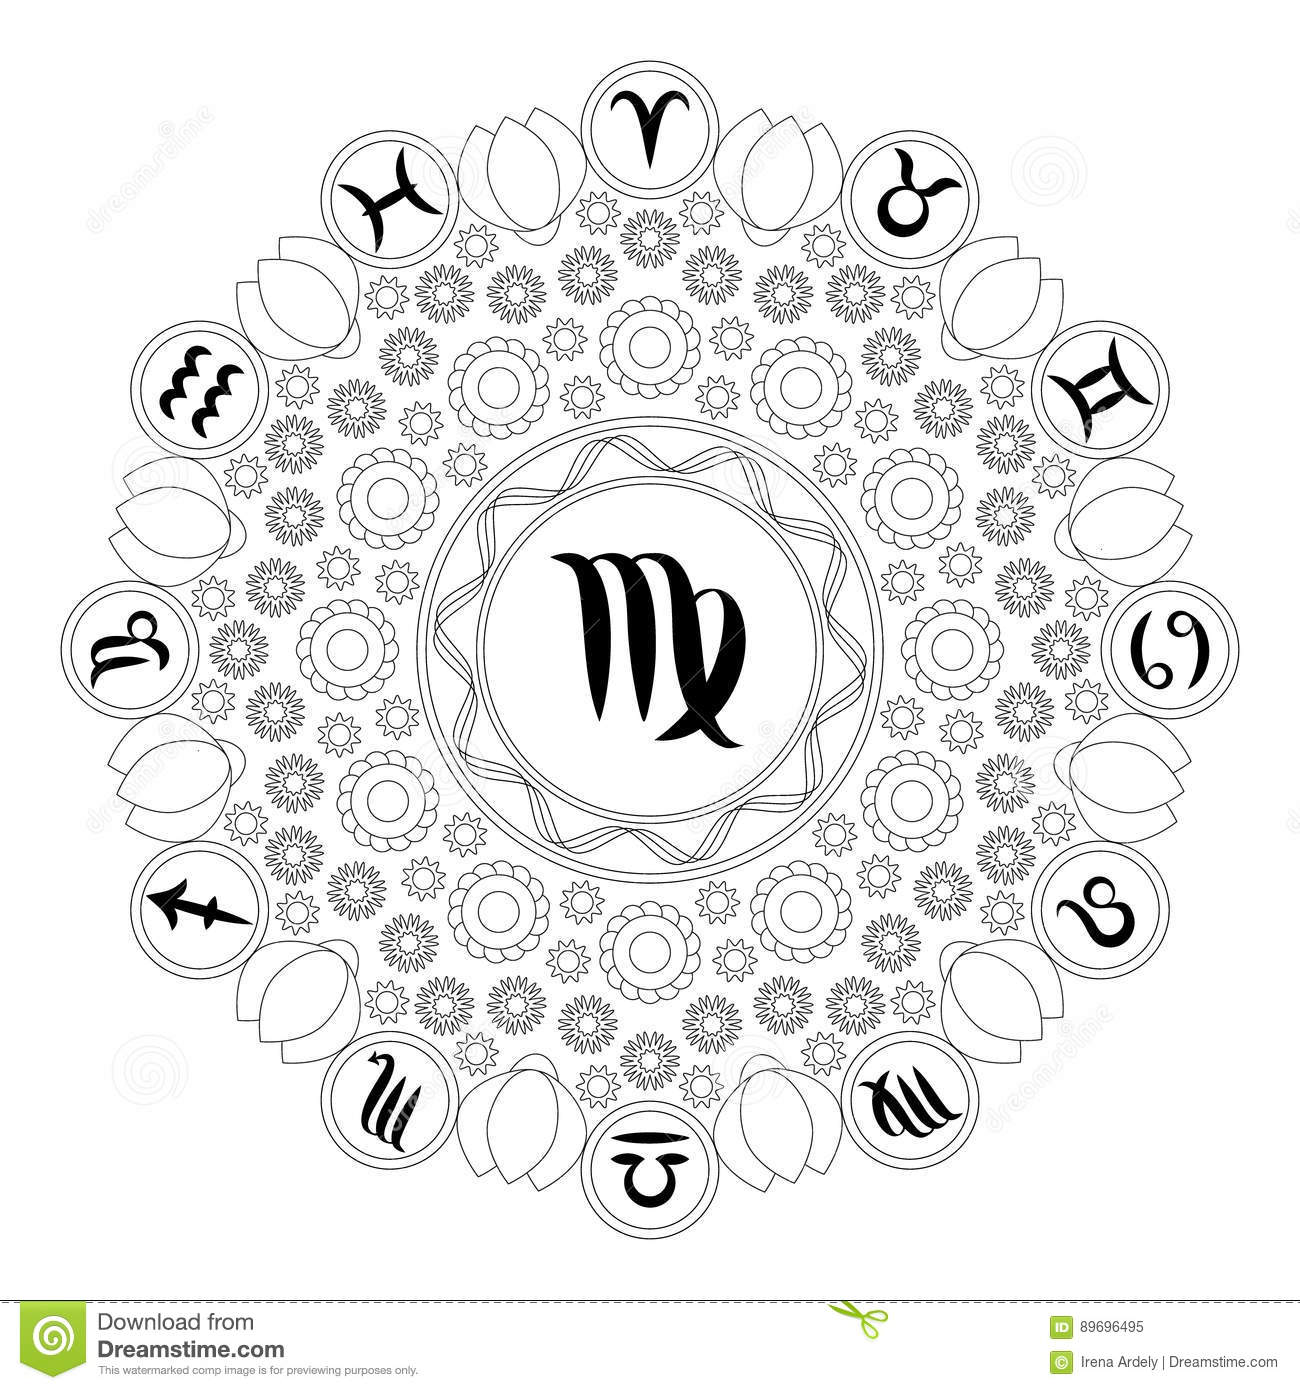 Vector black and white round mandala with zodiac symbol of virgo vector black and white round mandala with zodiac symbol of virgo adult coloring book page buycottarizona Gallery